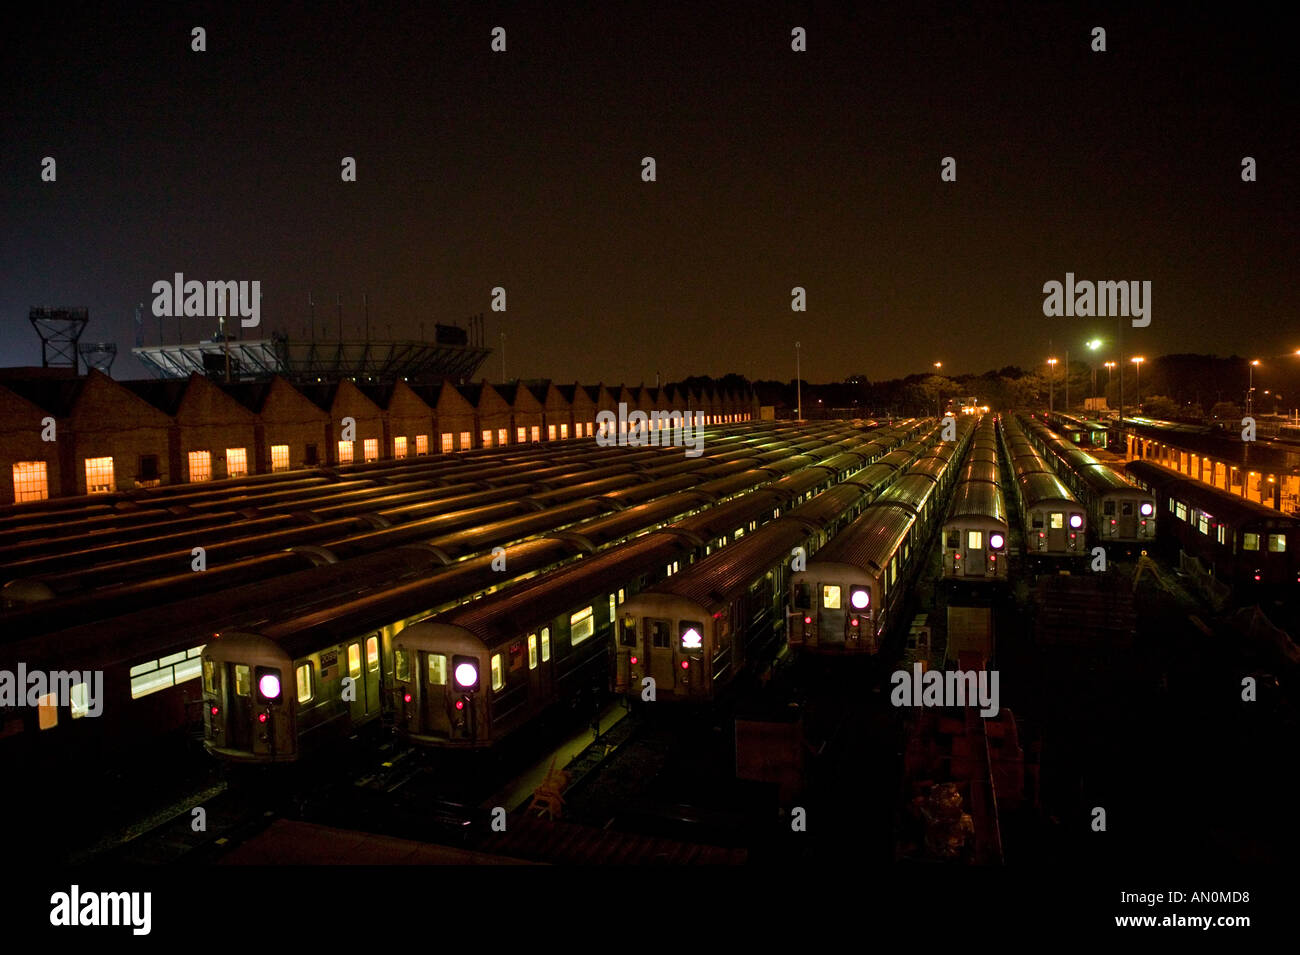 7 train line maintenance depot at night in New York United States USA 2005 - Stock Image